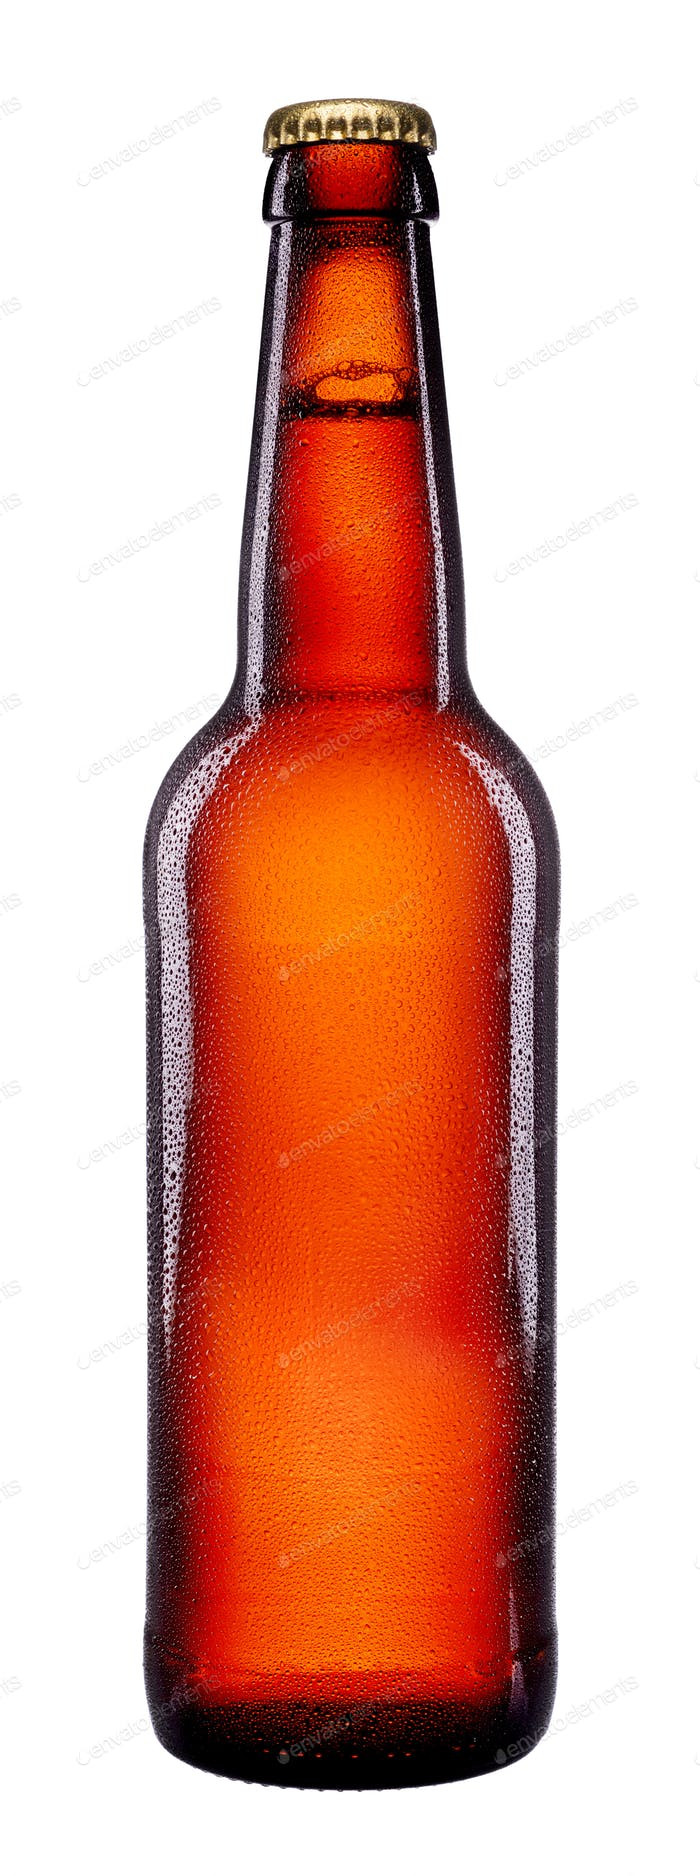 san miguel glass vase of download 138 portrait white and orange water photos pertaining to brown bottle of beer